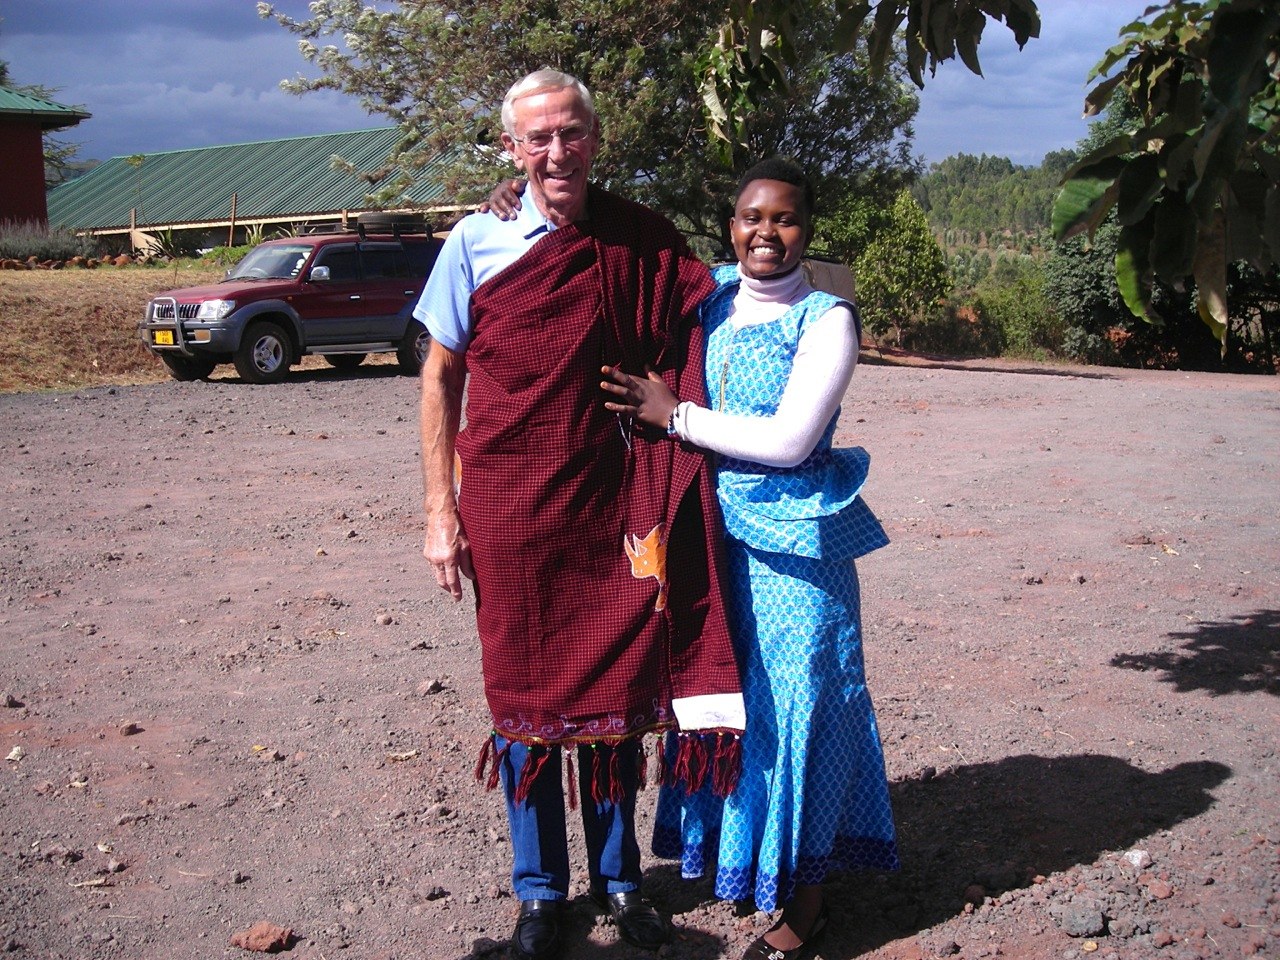 Martina presents Dr. Duane with a Shuka